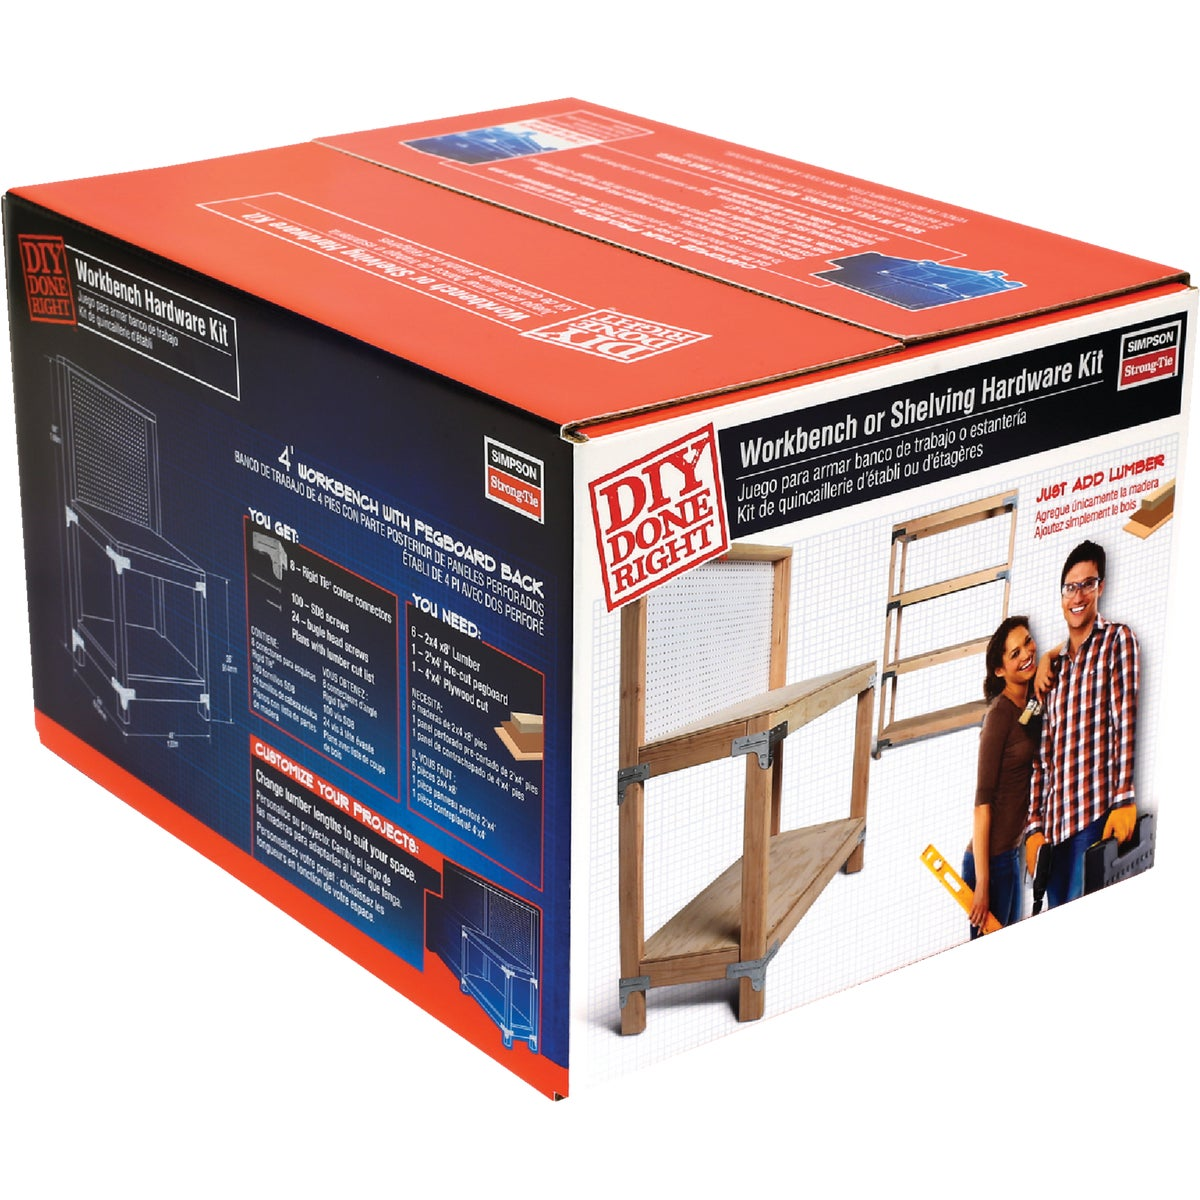 WORKBENCH SHELVING KIT